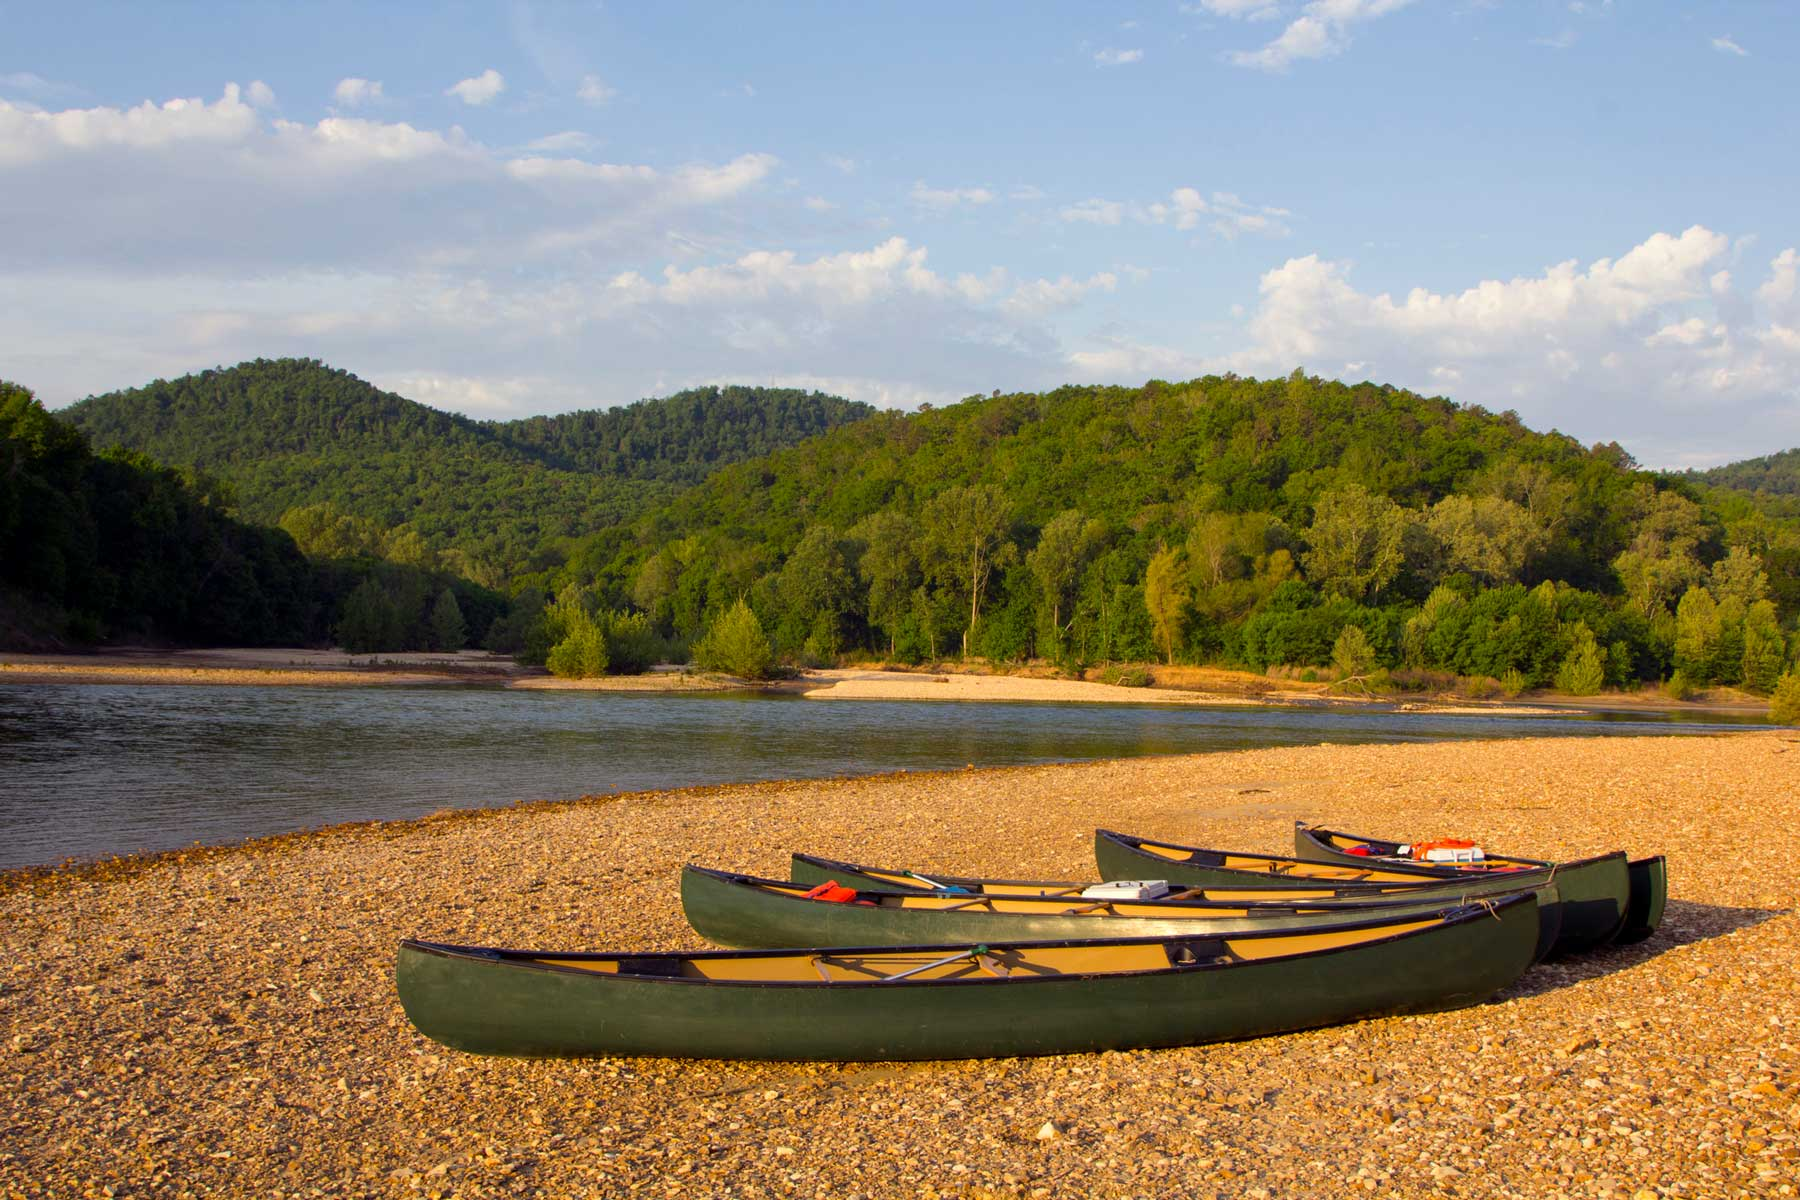 Canoes on the riverbank in Arkansas